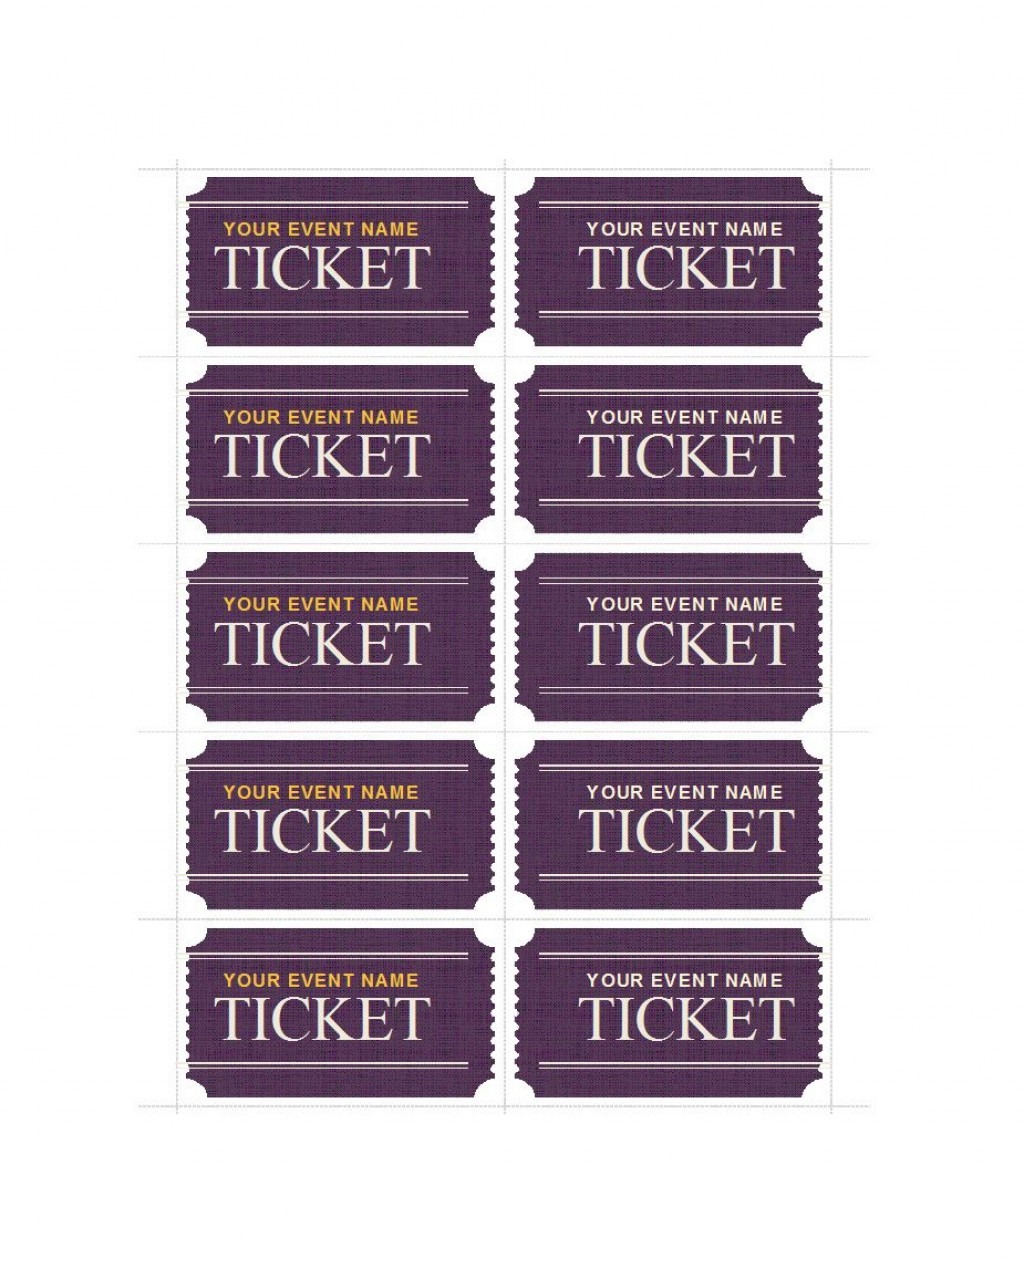 005 Frightening Fundraiser Ticket Template Free Sample  Printable Download Car WashLarge